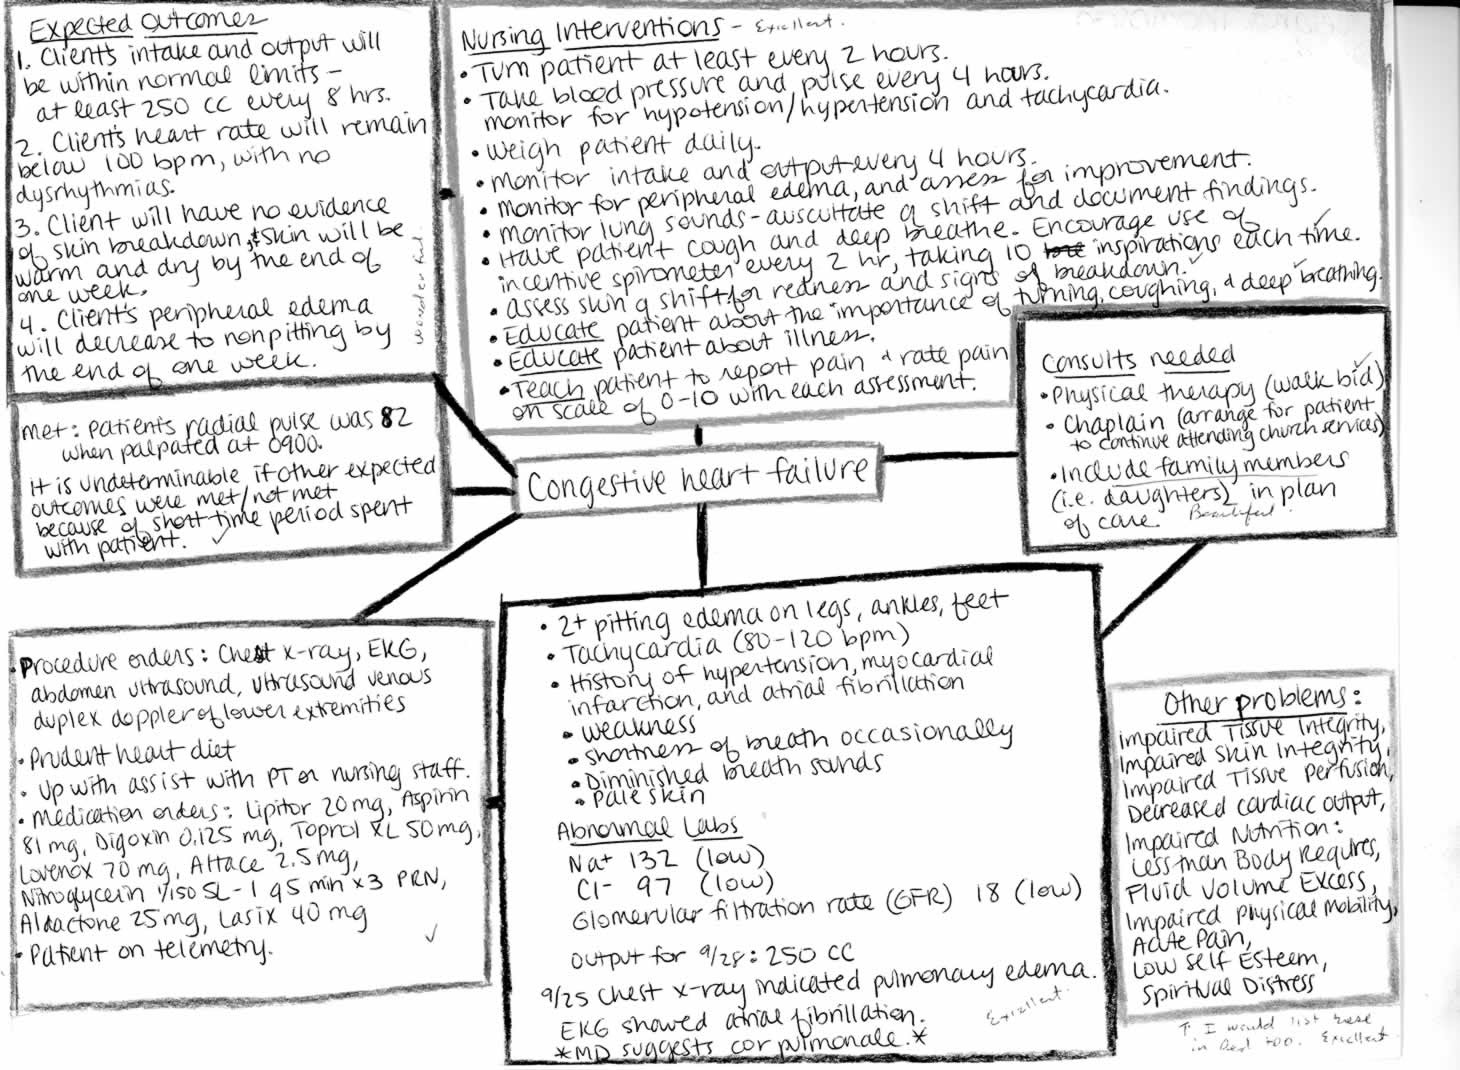 1000+ images about Nursing Concept Map on Pinterest